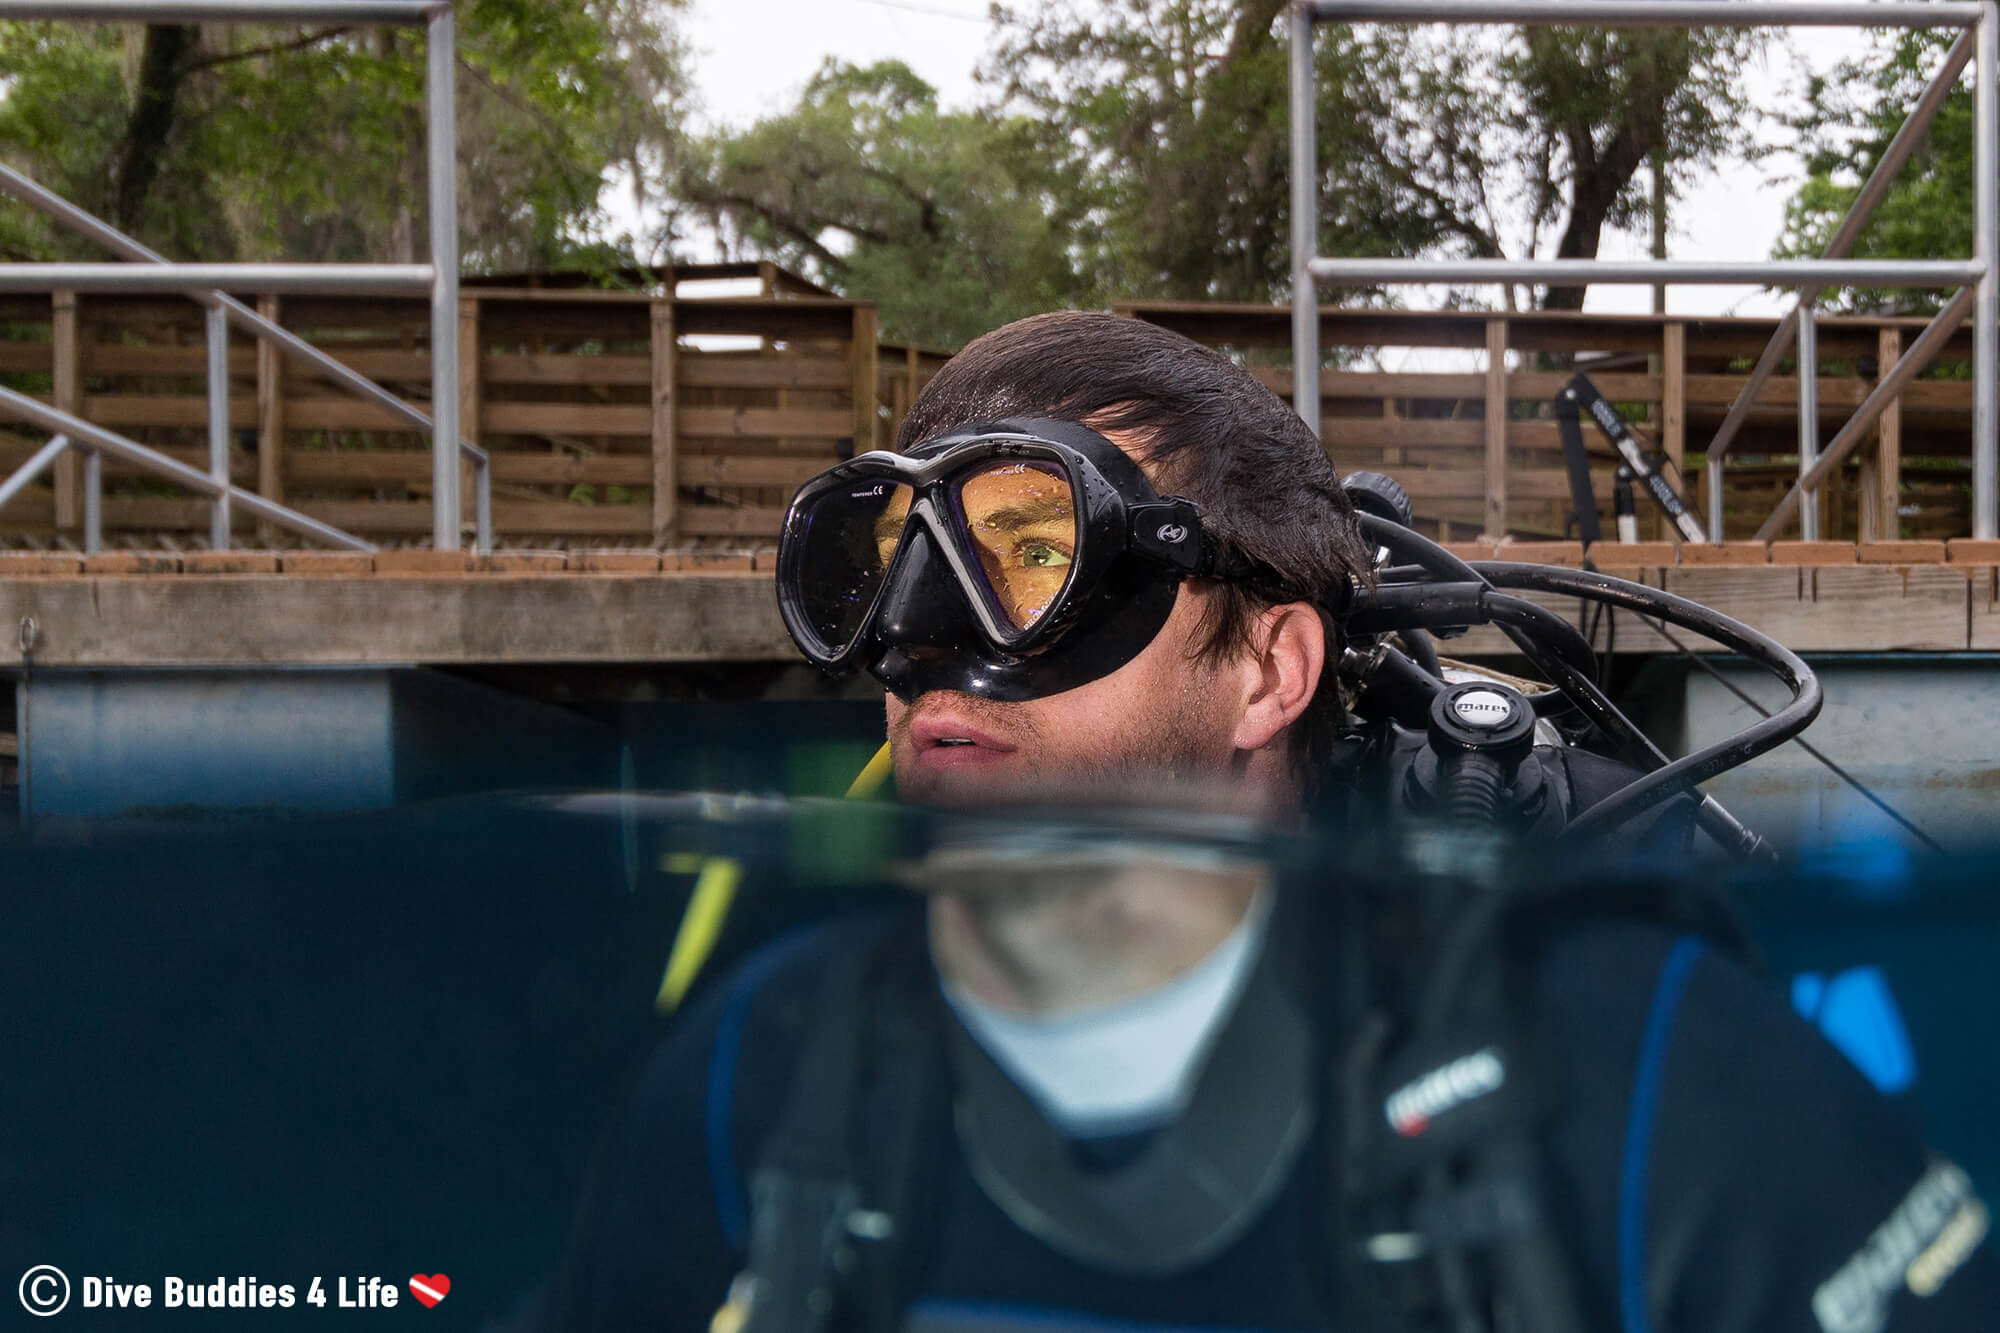 Joey In Scuba Equipment Split Photo About To Dive The Blue Grotto Sinkhole In Florida, USA